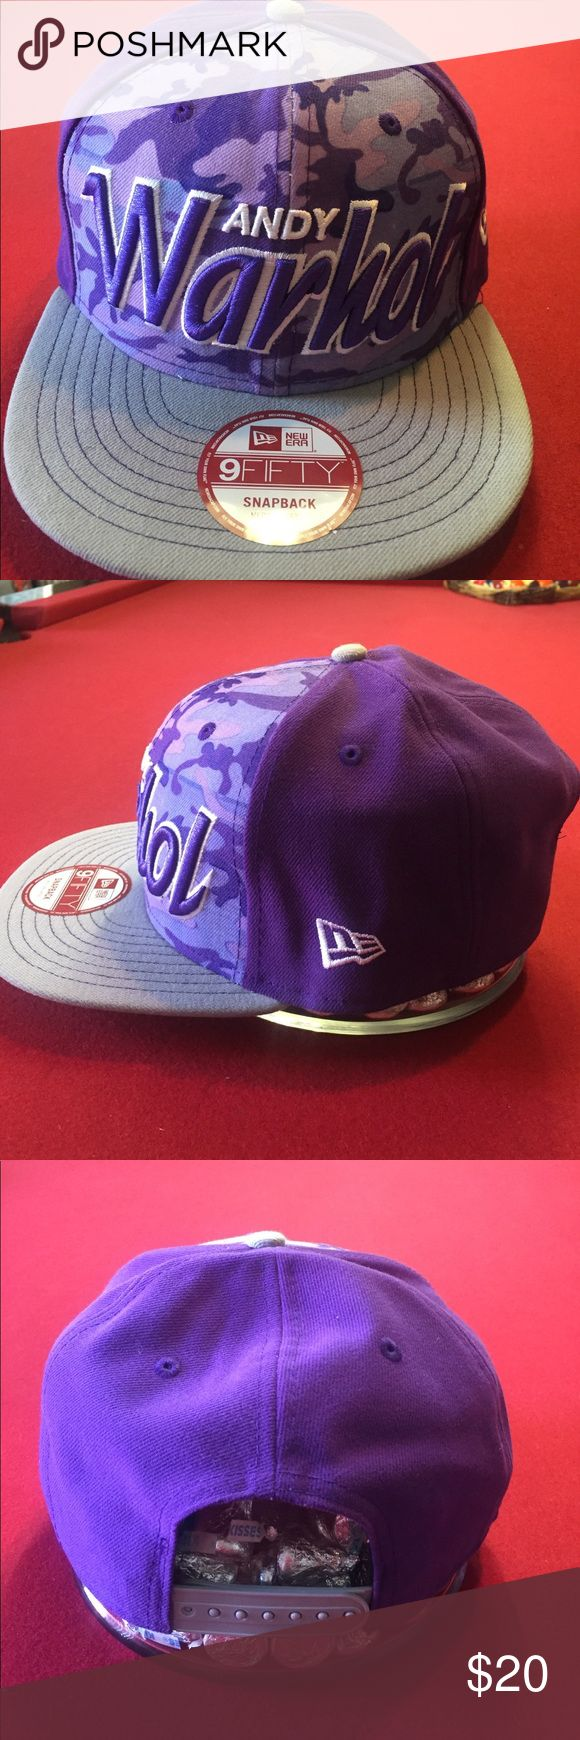 New Era Andy Warhol SnapBack Brand new, New Era Andy Warhol edition snapback in M/L. Color is gray and purple/camo New Era Accessories Hats